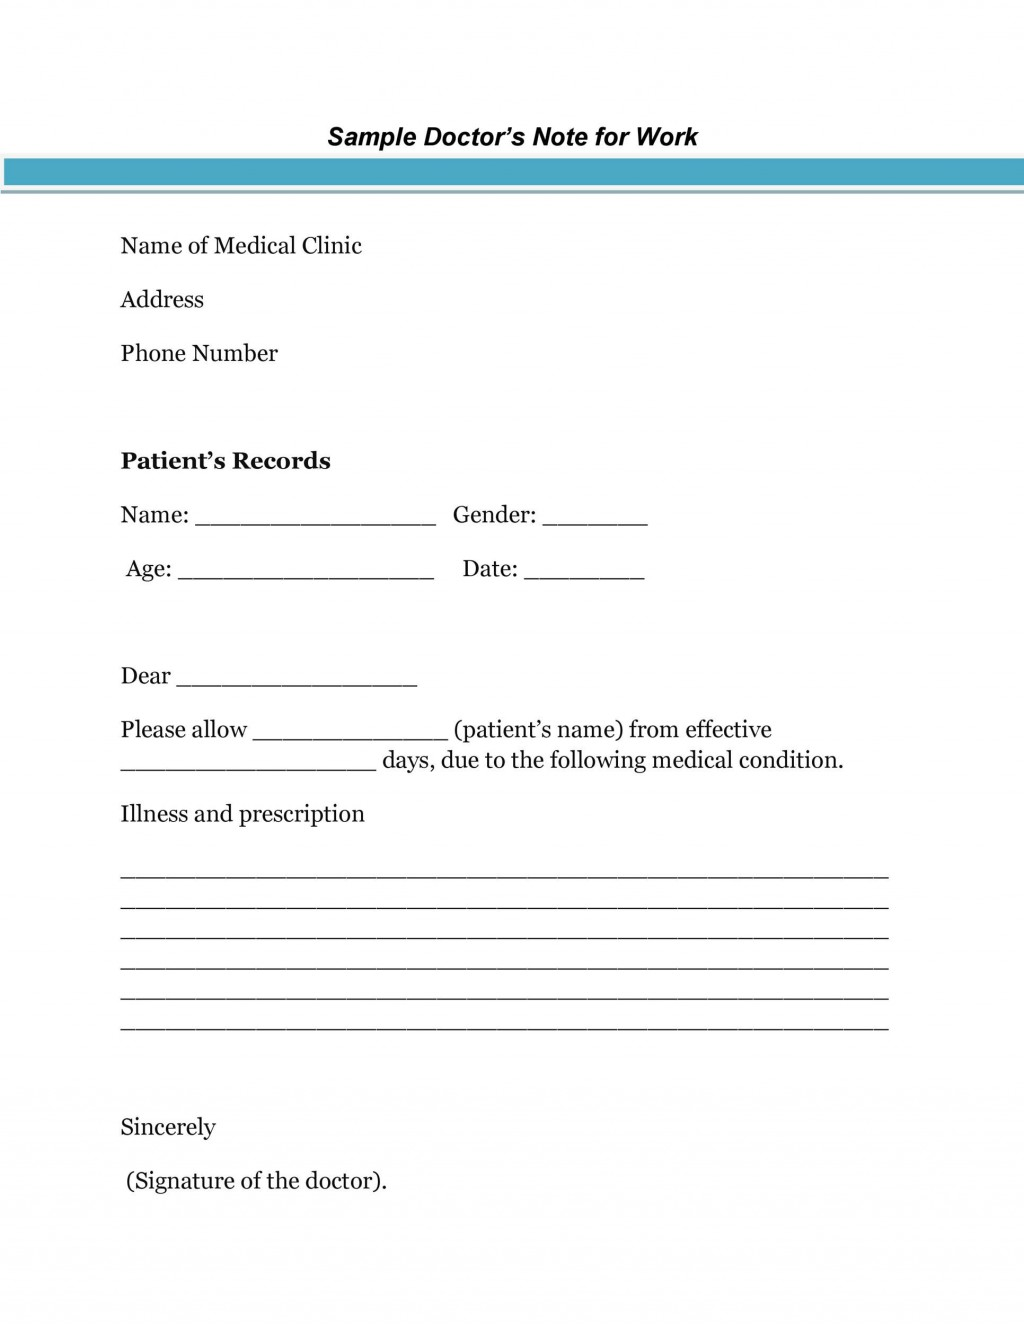 009 Staggering Free Doctor Note Template For Work High Resolution  Printable Editable Fake PdfLarge